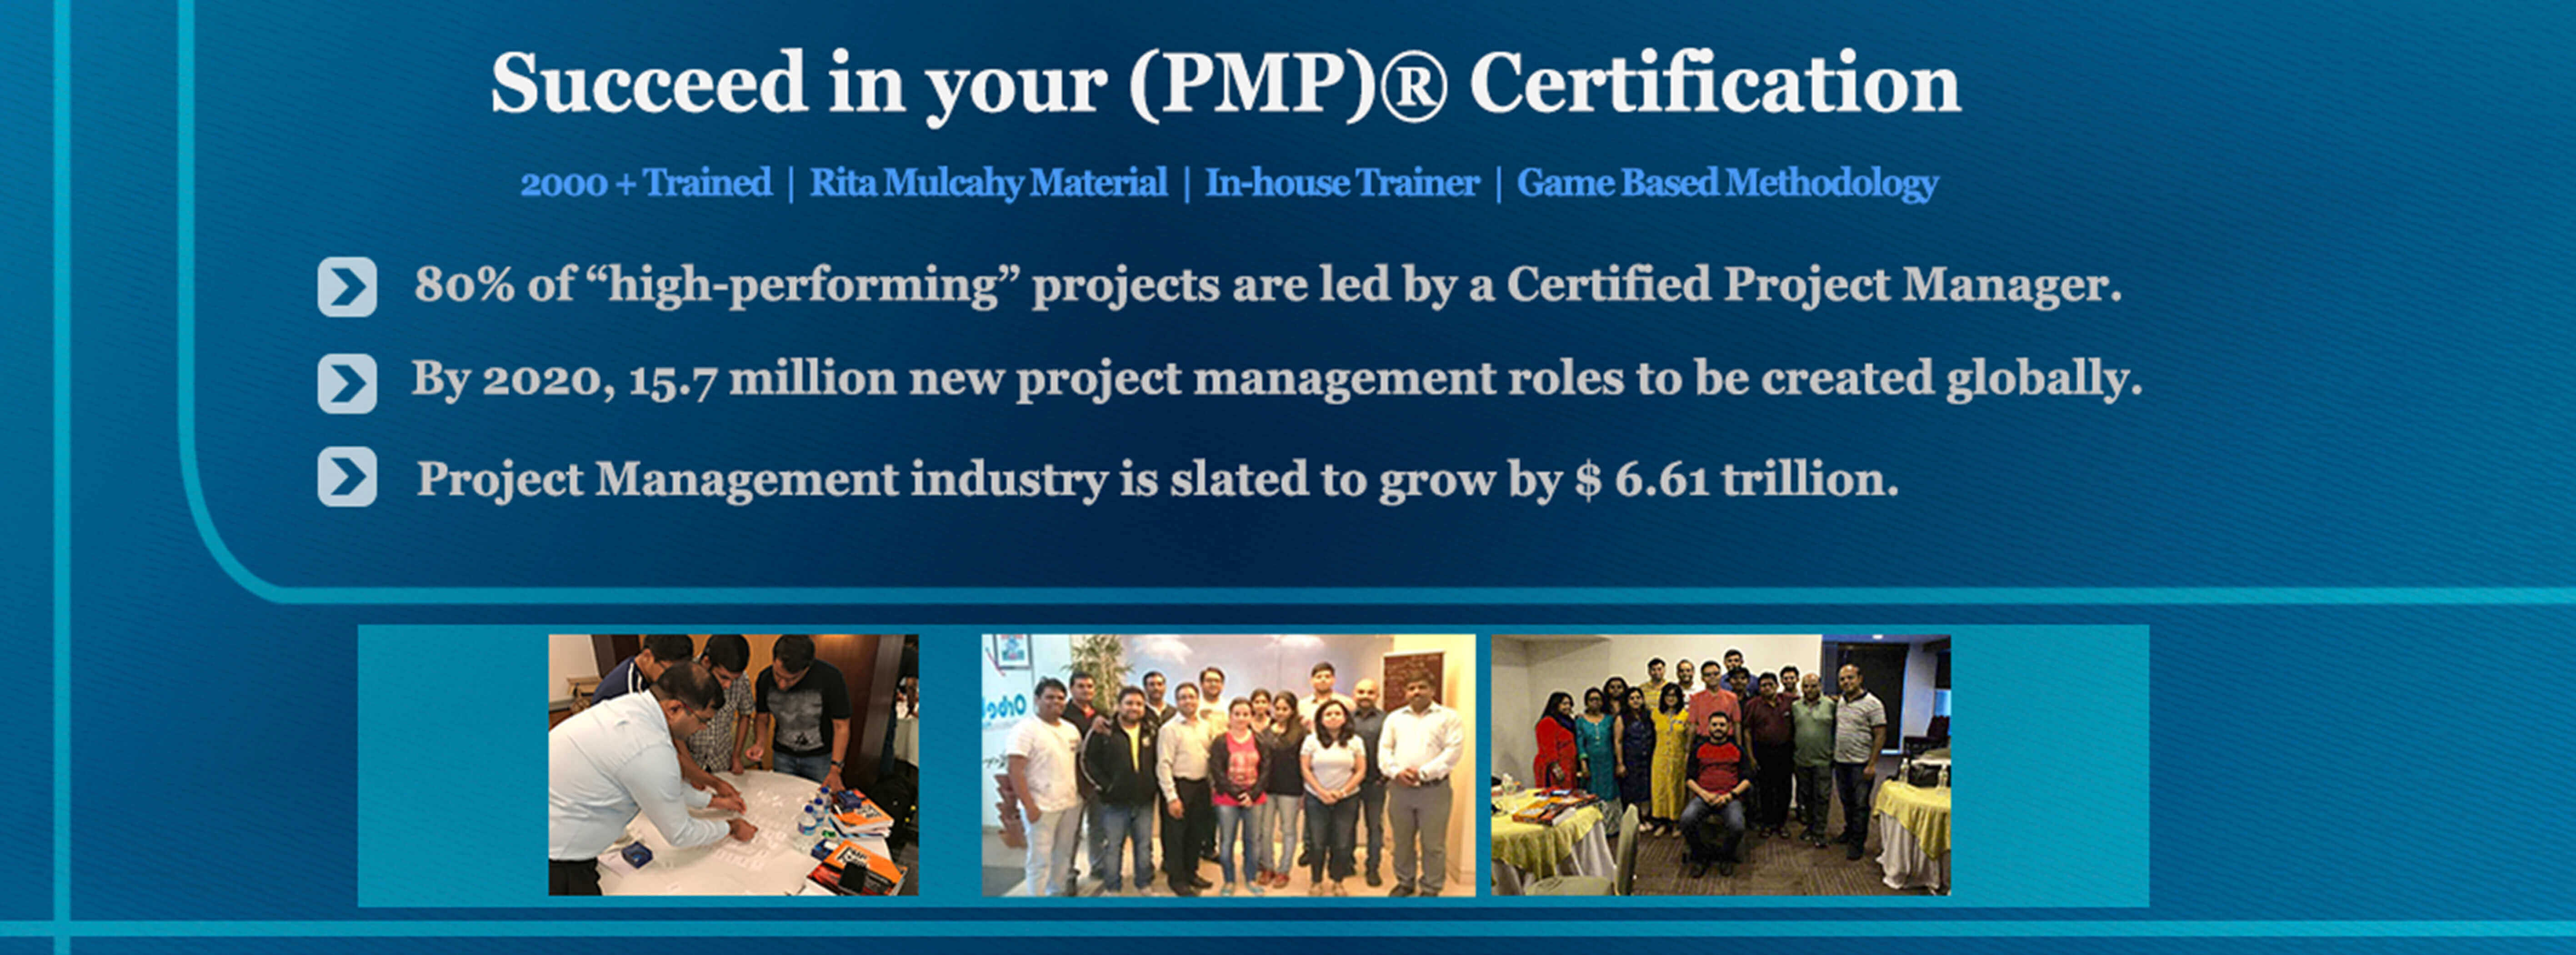 Pmp certification training course in hyderabad prothoughts project management professional pmp certification course in hyderabad 1betcityfo Choice Image